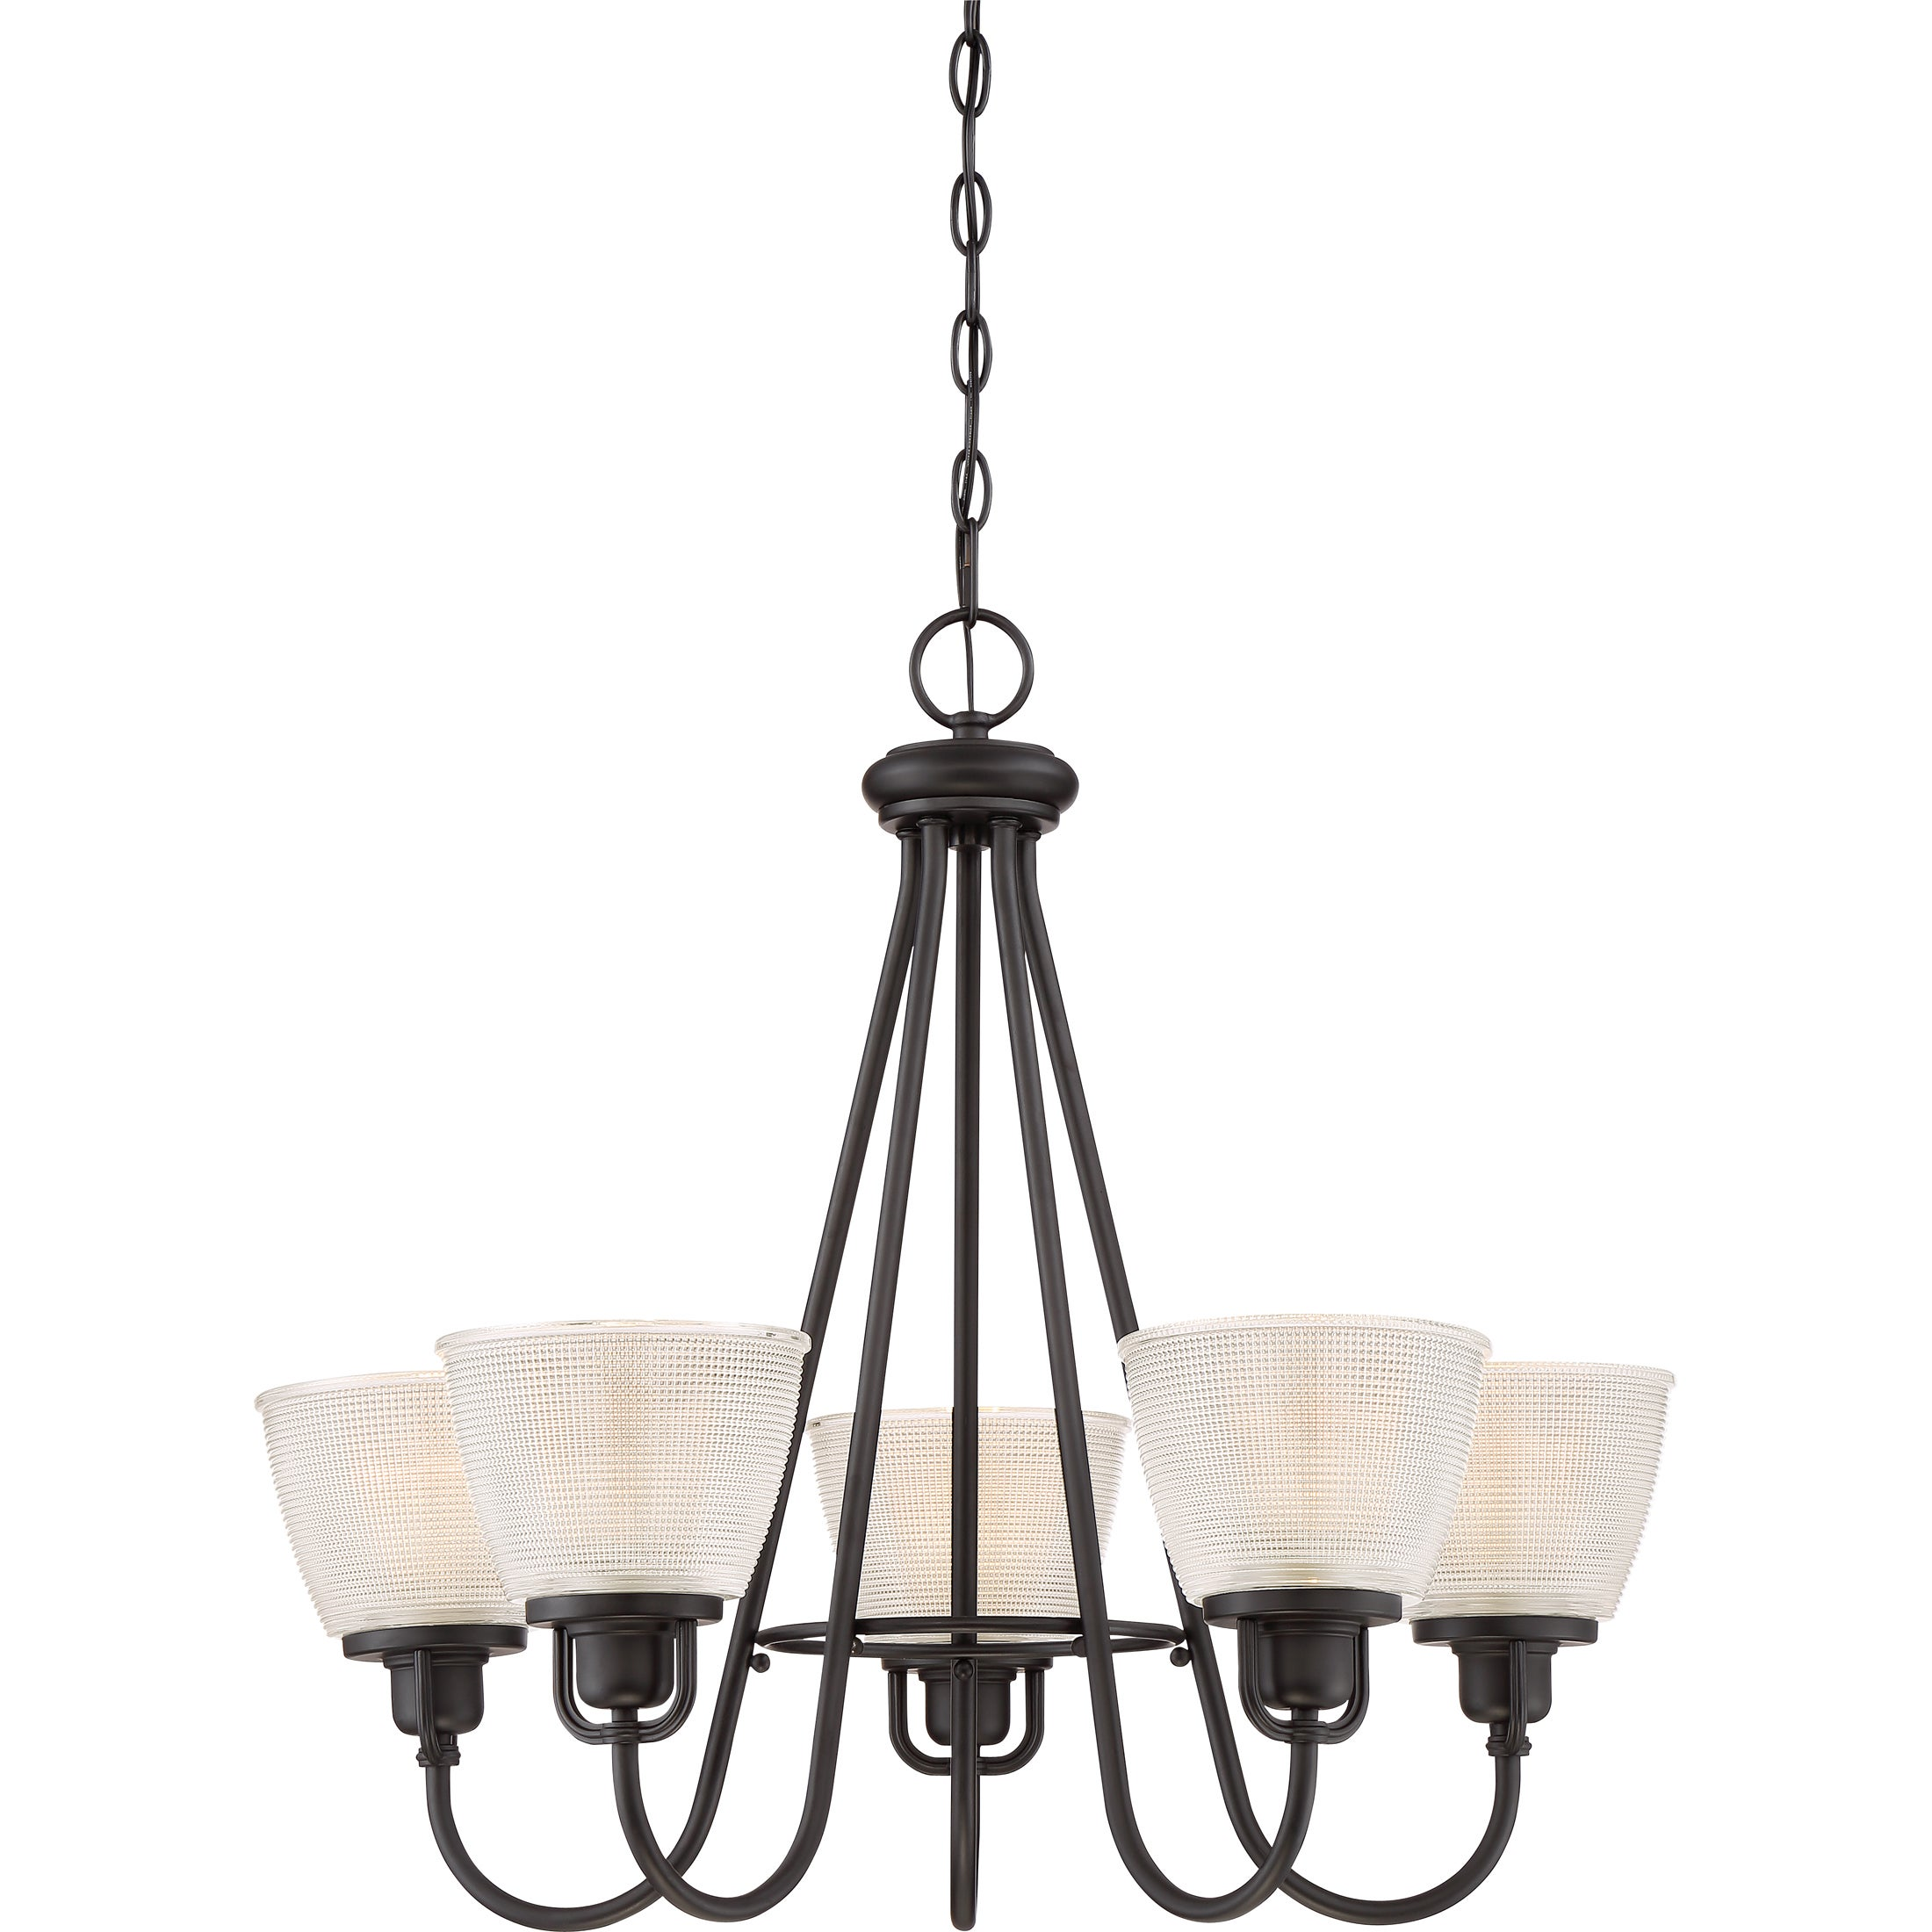 Shop quoize dublin mystic black steel 5 light chandelier free shipping today overstock com 13914740